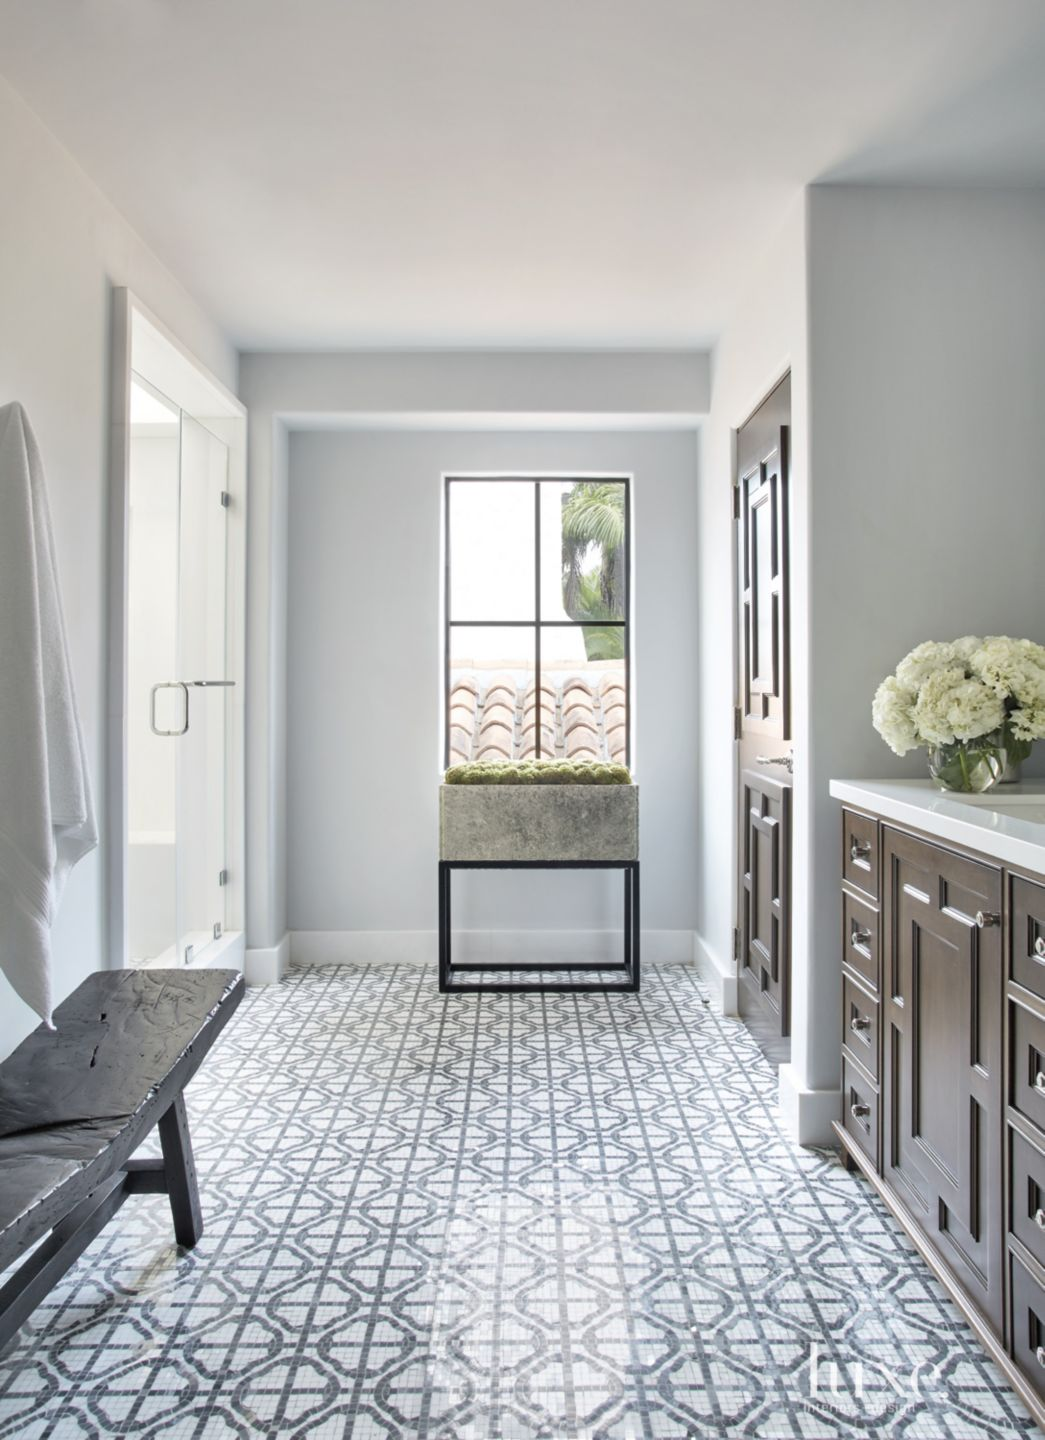 Transitional White Bathroom with Quatrefoil Mosaic Flooring